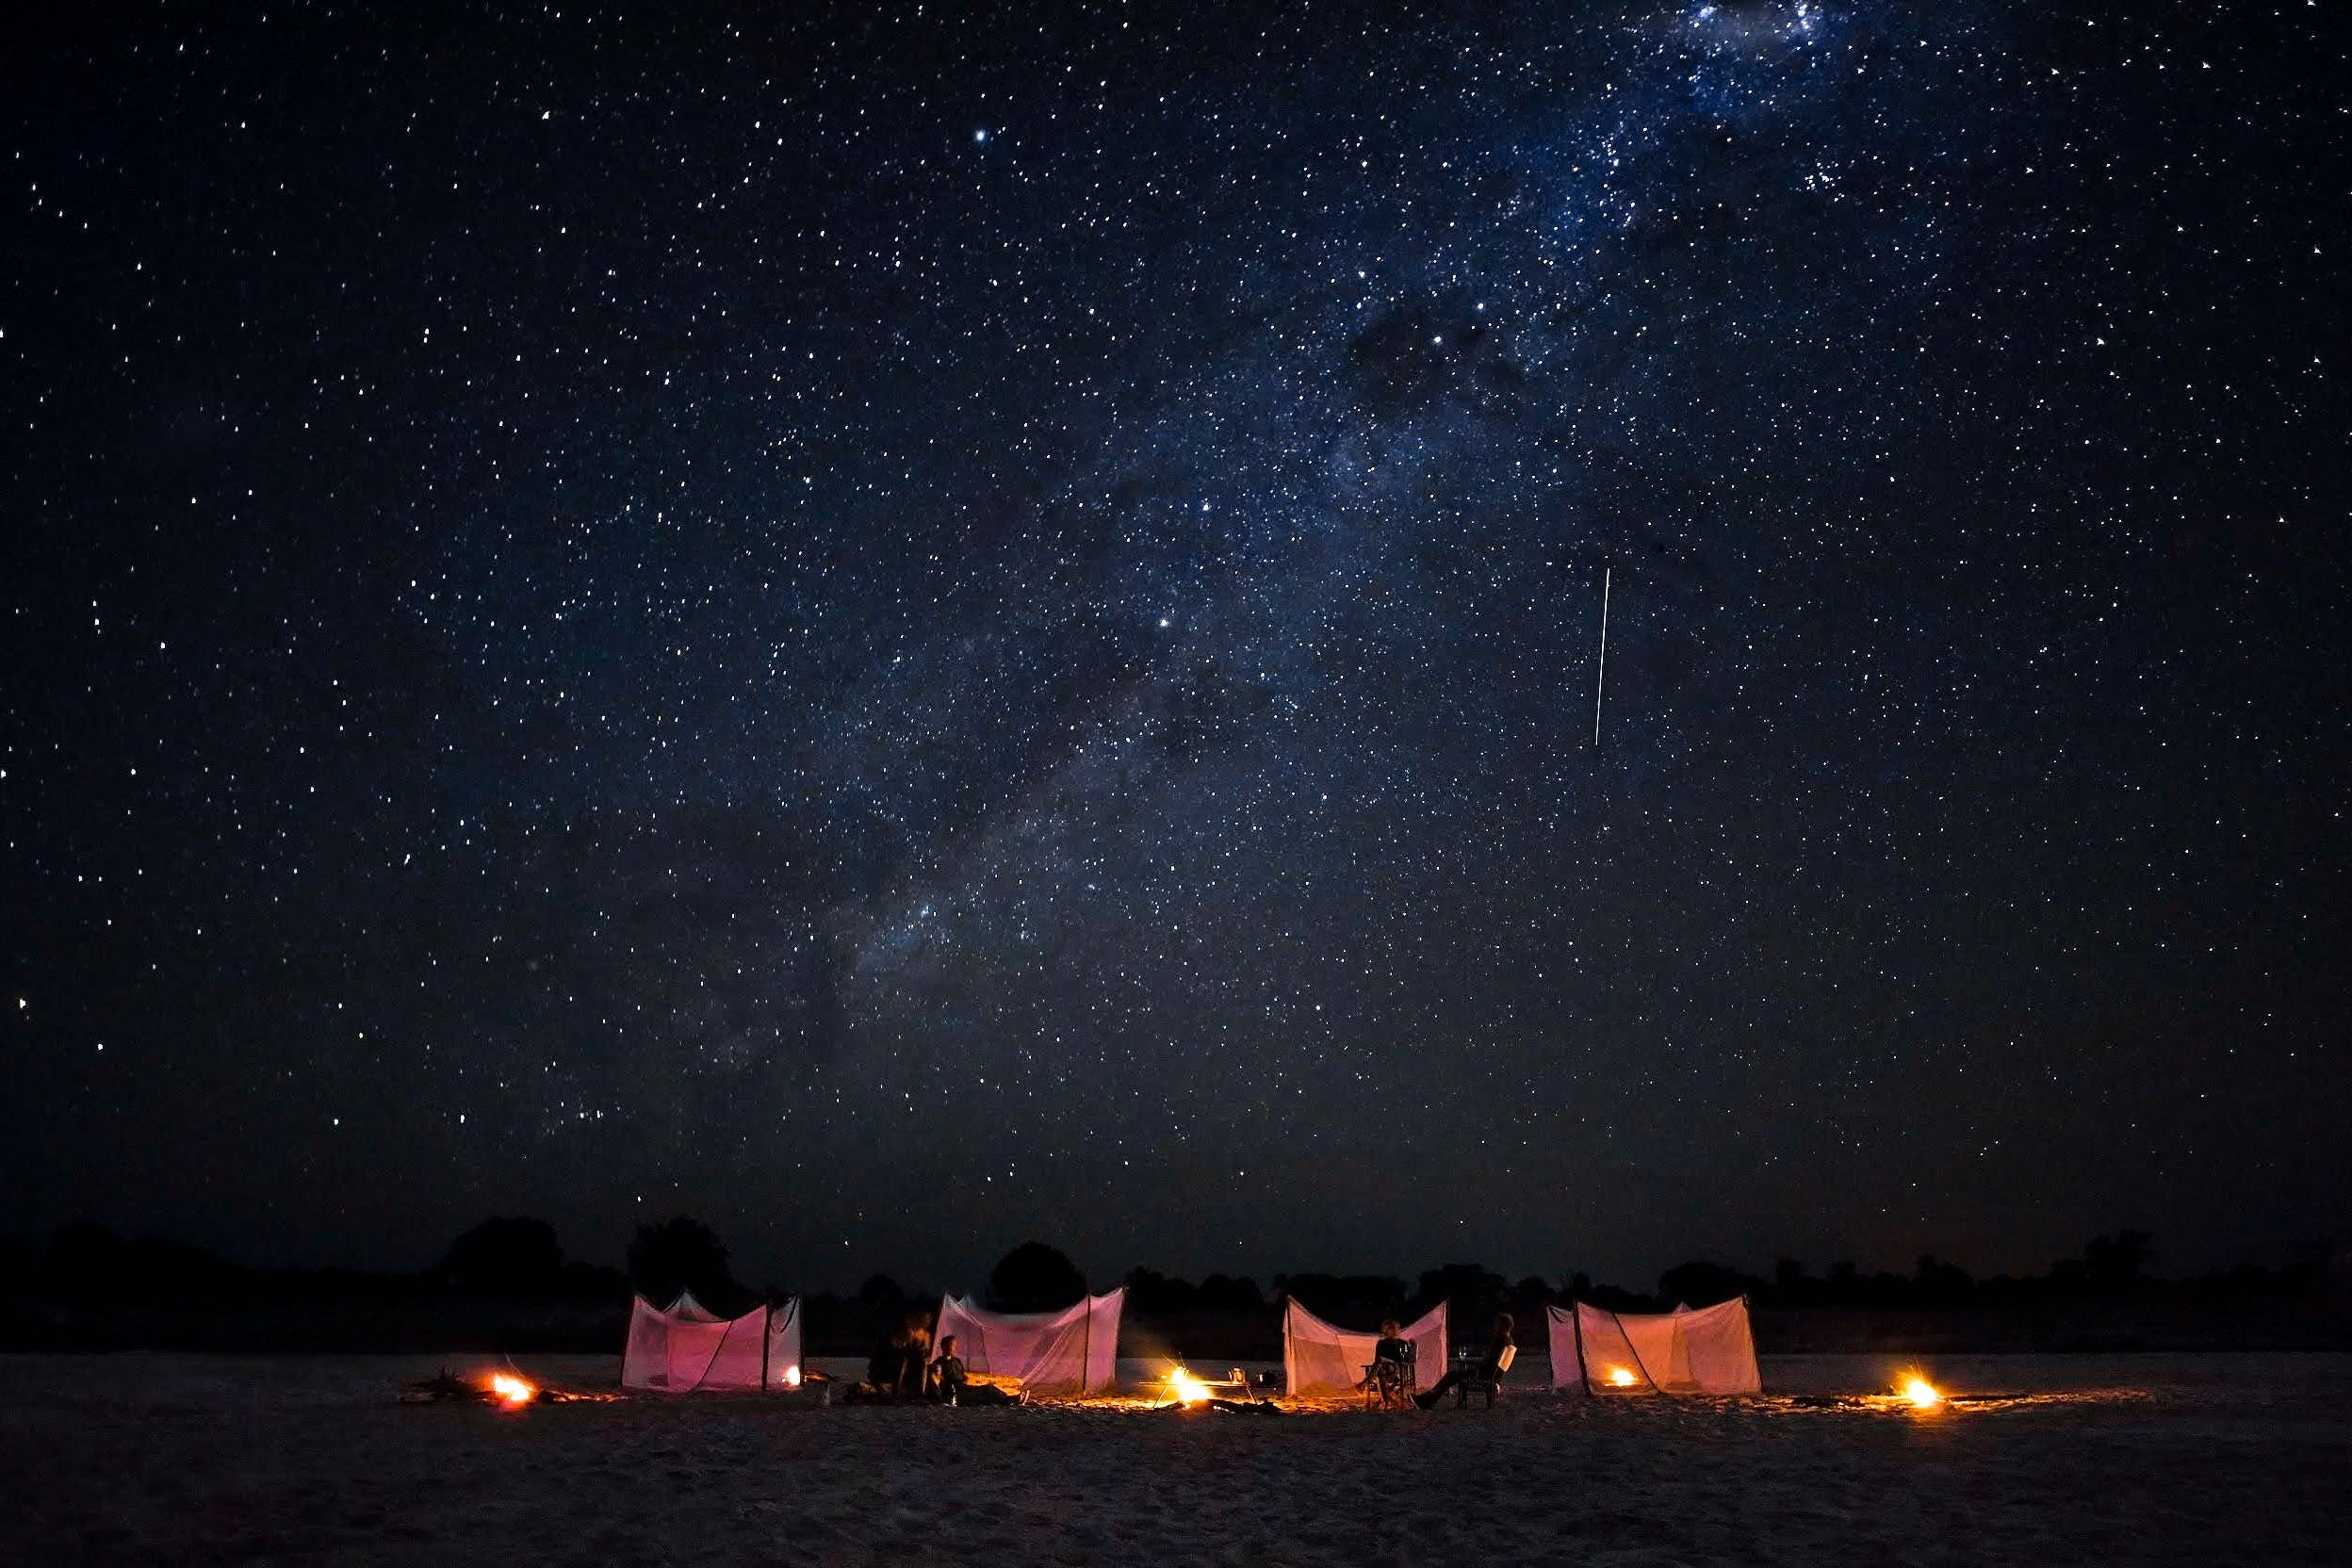 Fly camping South Luangwa National Park - What to do in Zambia